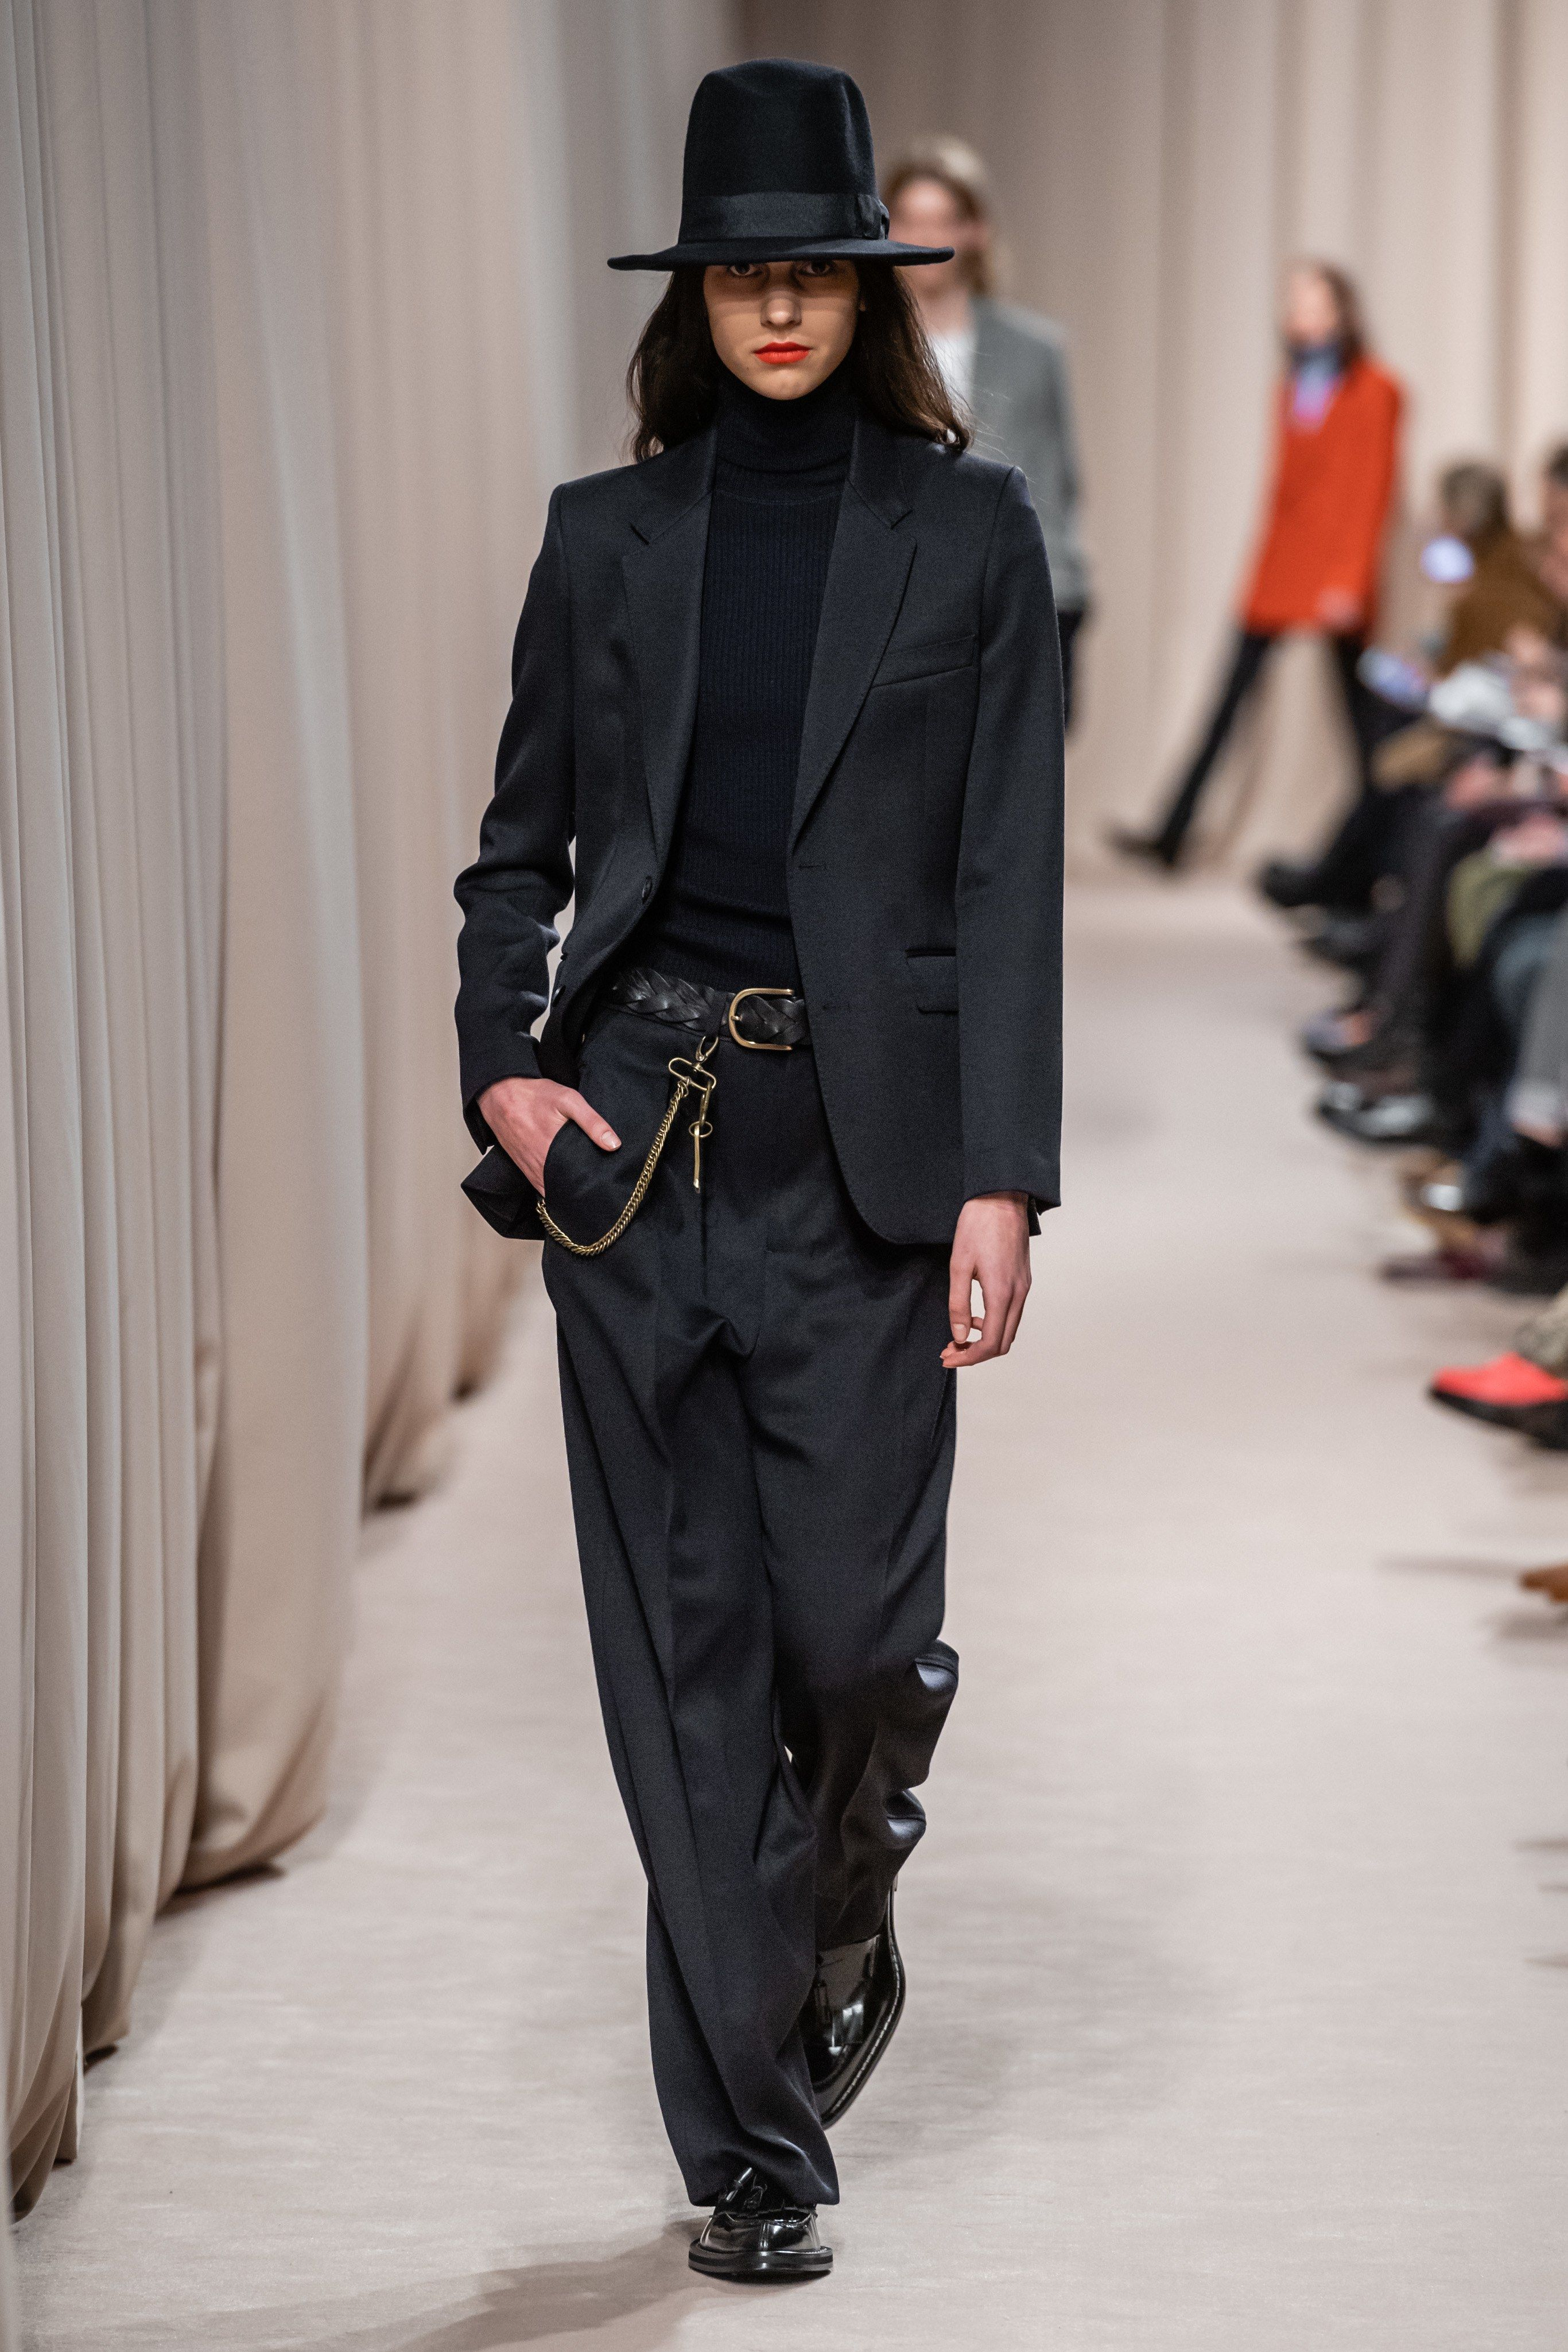 58b61d9a0 Ami Fall 2019 Menswear Fashion Show in 2019 | Women's Runway ...